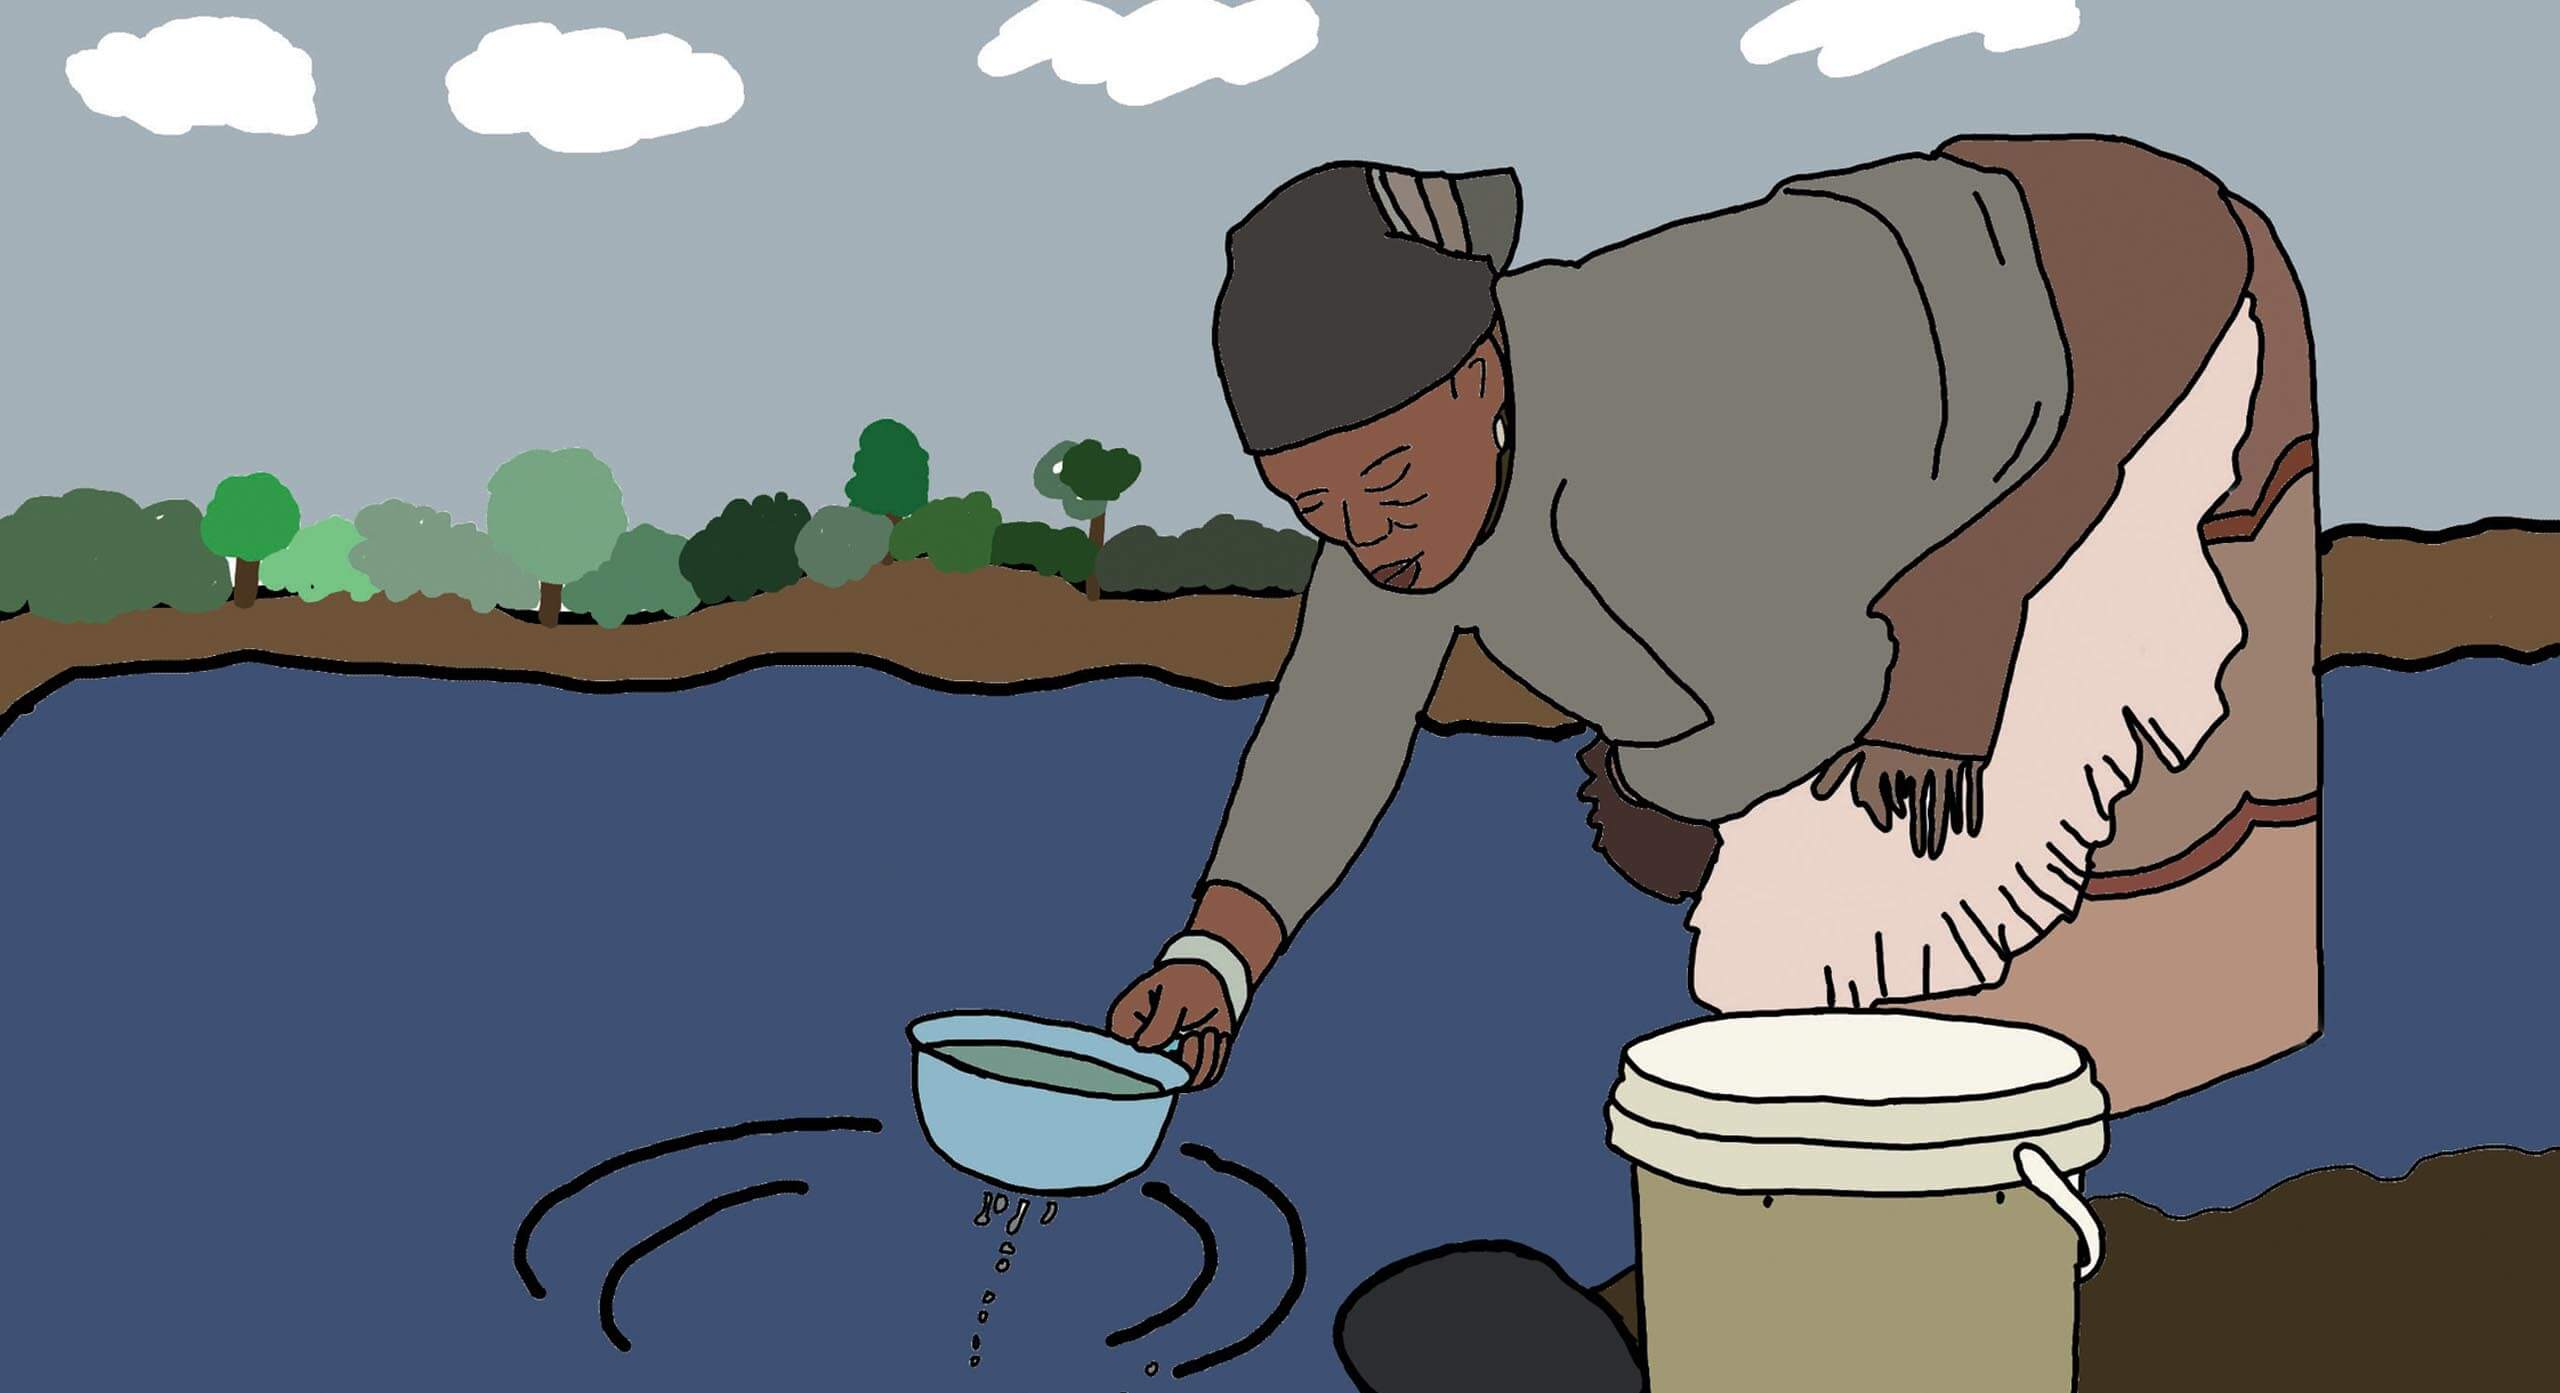 An illustration of a woman gathering water